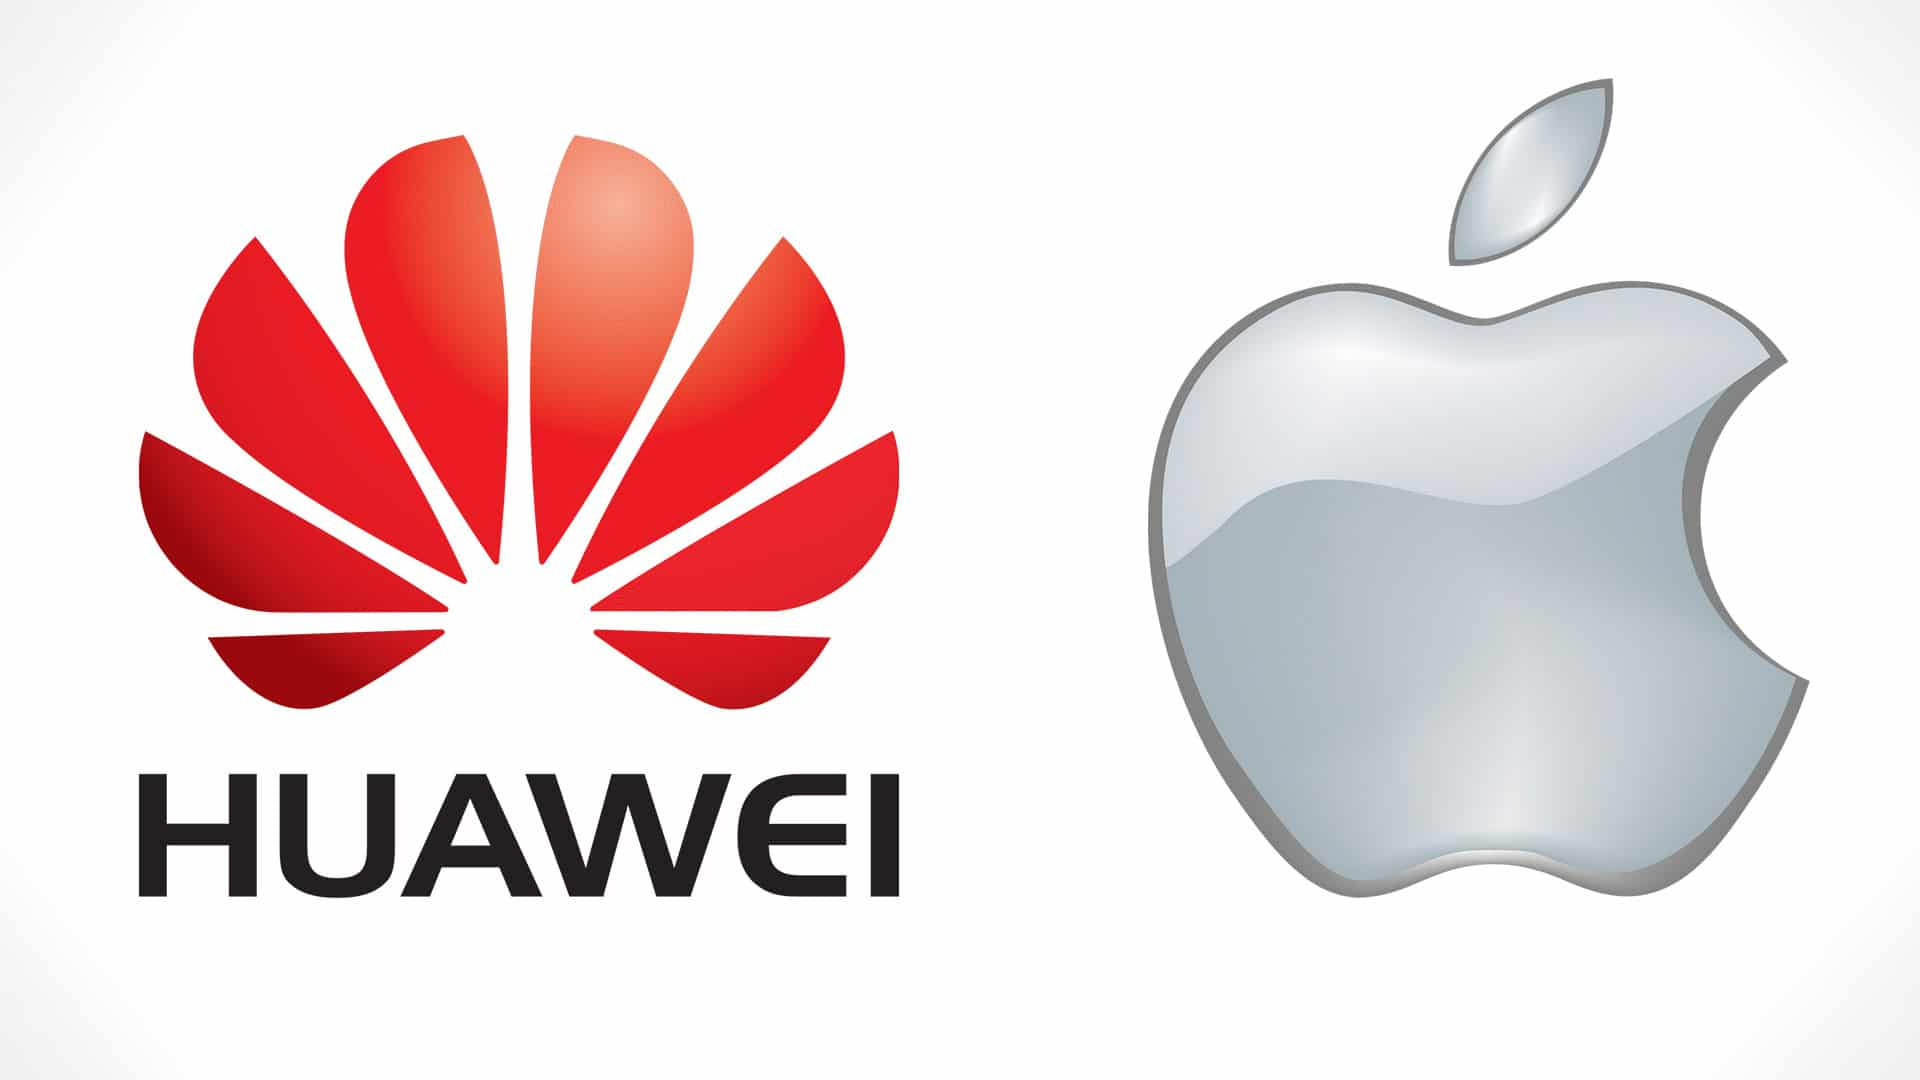 Logo Huawei dan Apple, Kontroversial